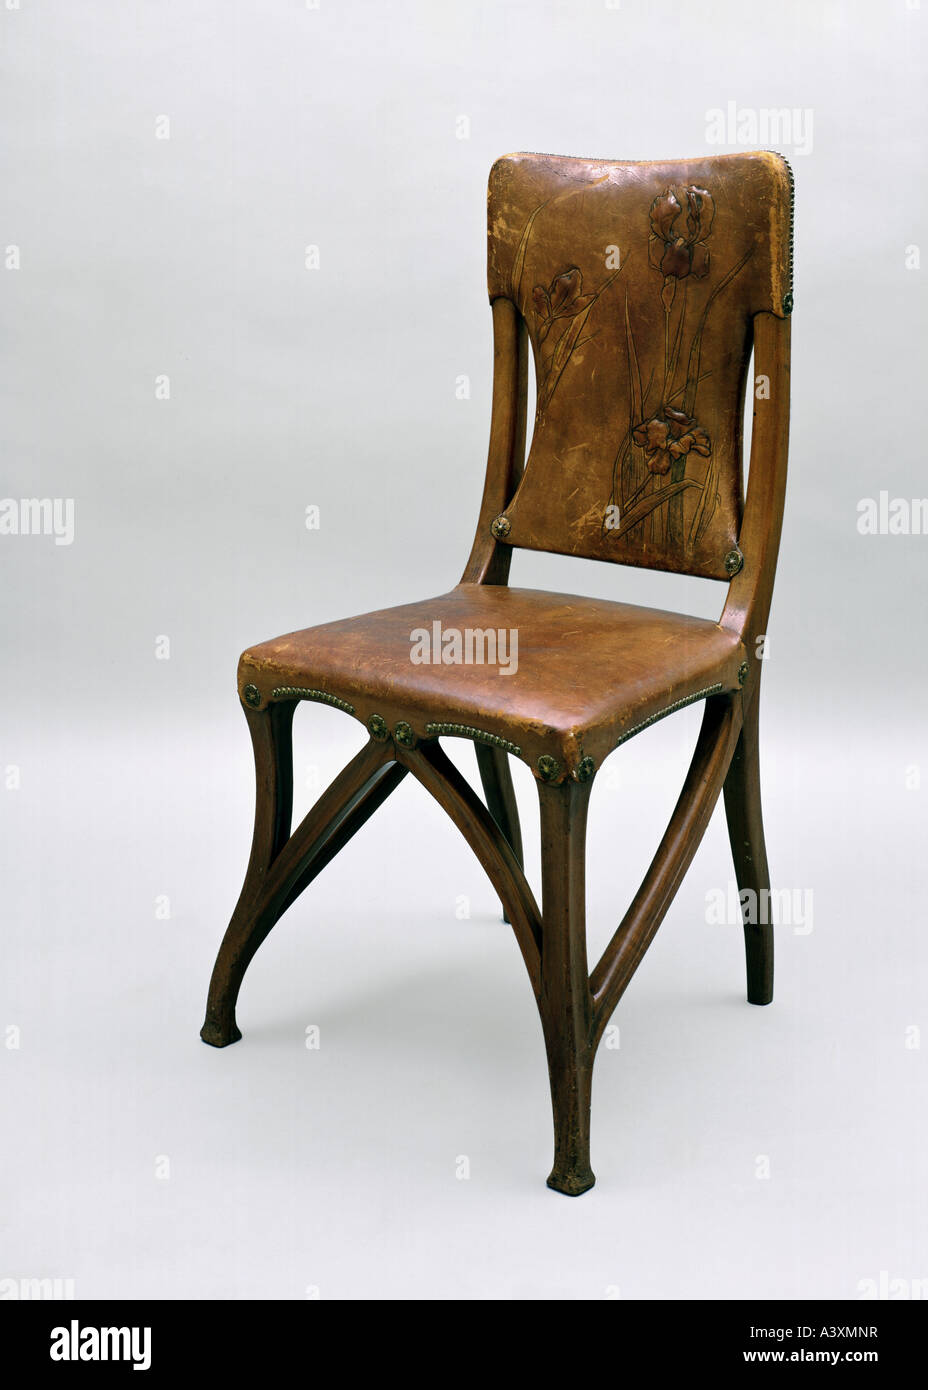 Fine arts art nouveau furniture chair circa wood